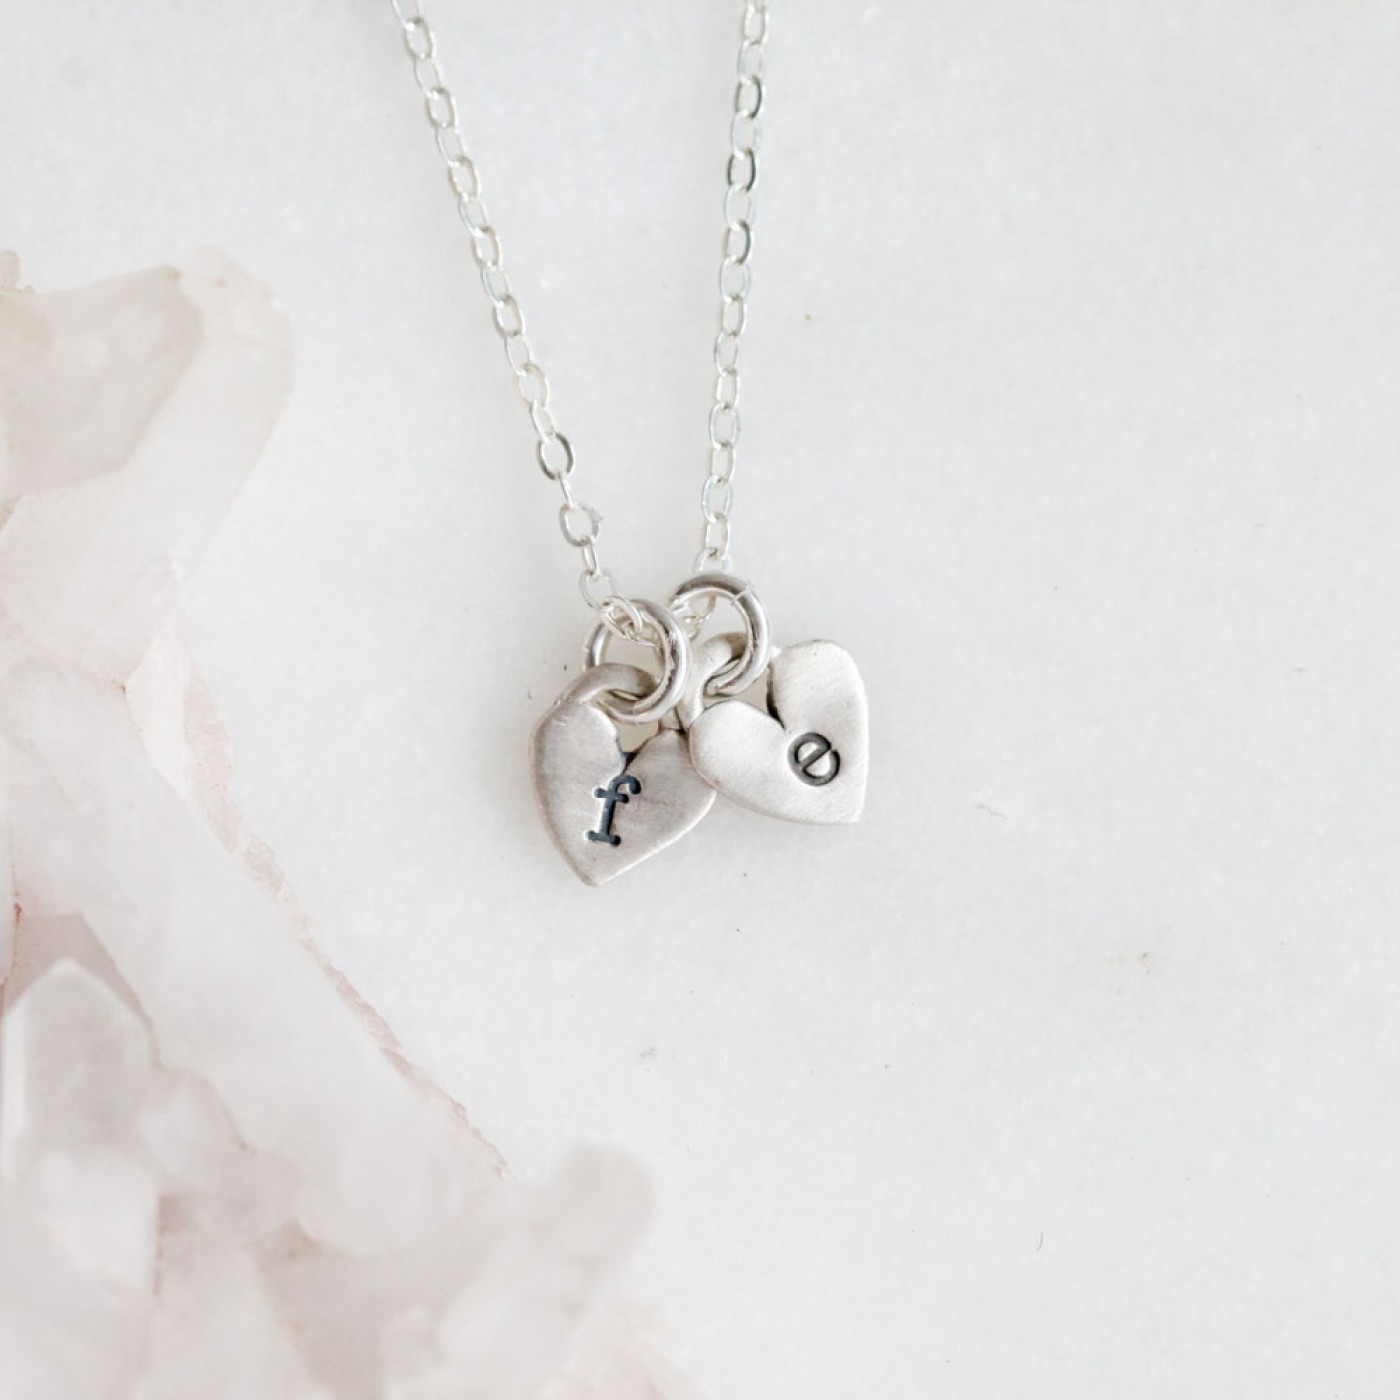 Cherished Hearts Initials Necklace Sterling Silver